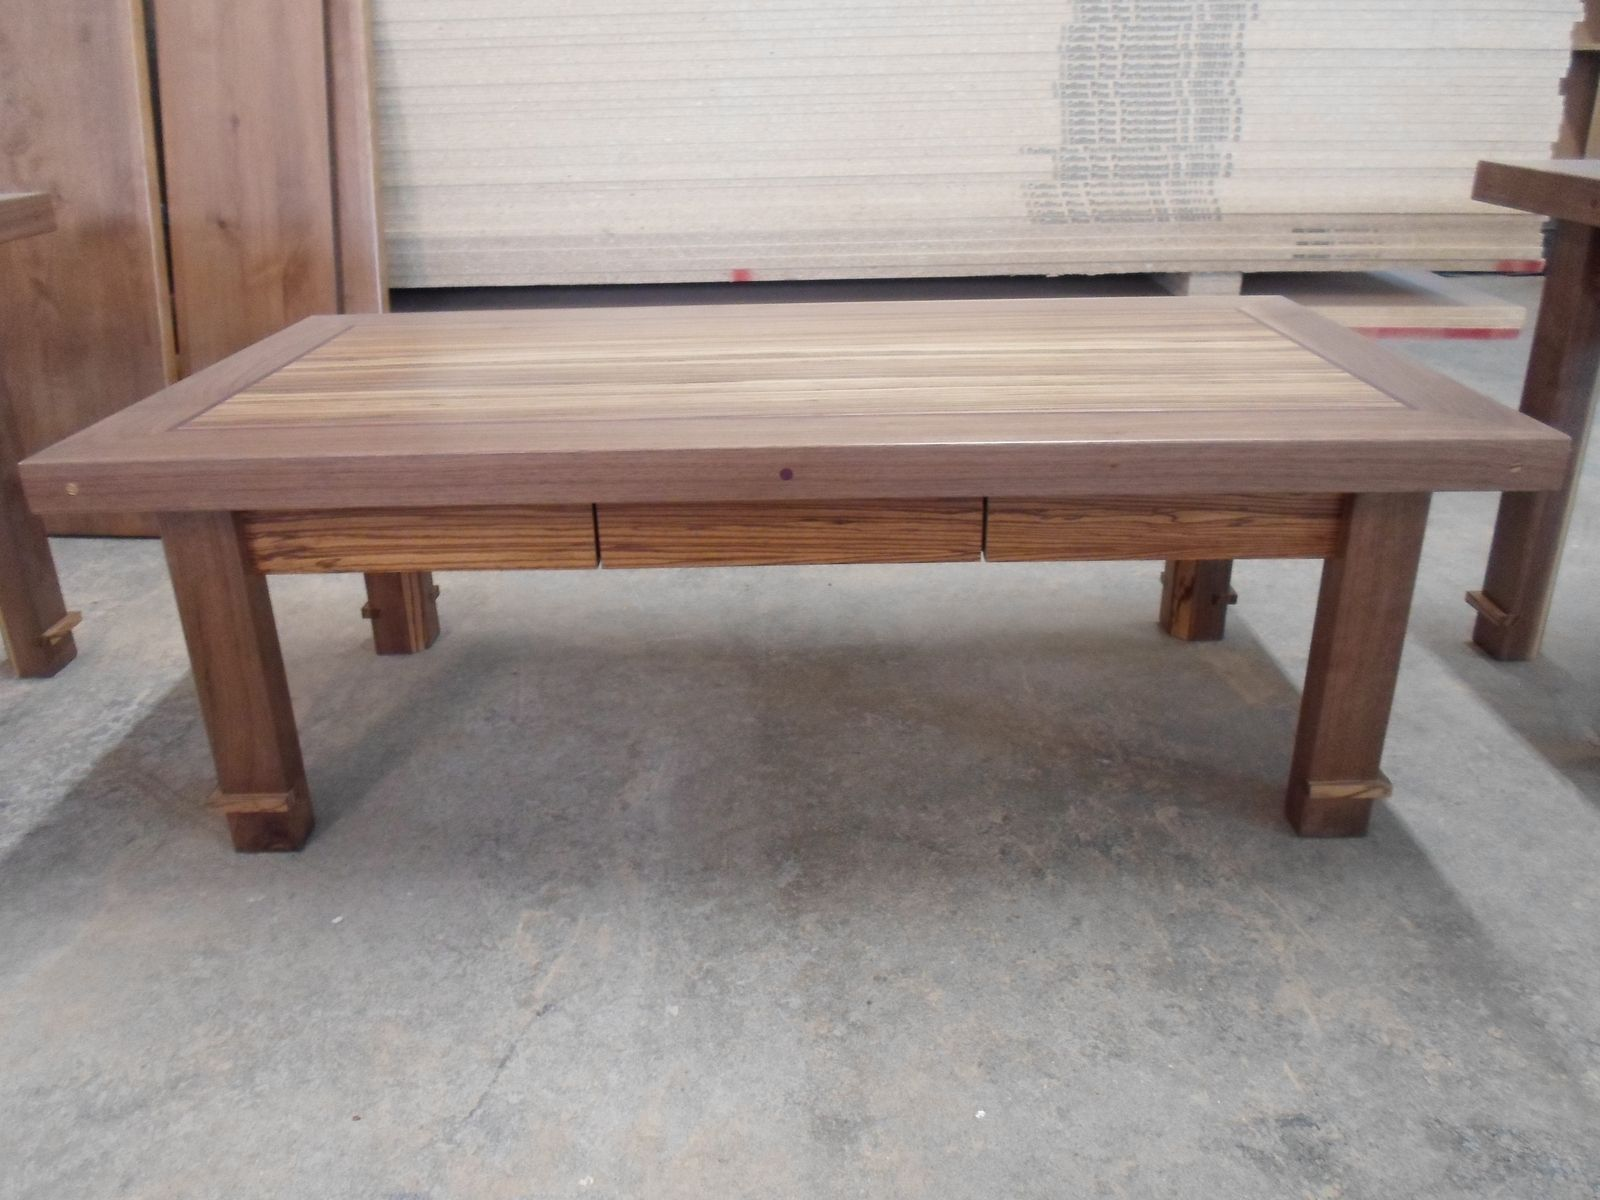 Handmade Zebrawood Purpleheart And Black Walnut Coffee Table By Legacey Custom Furniture